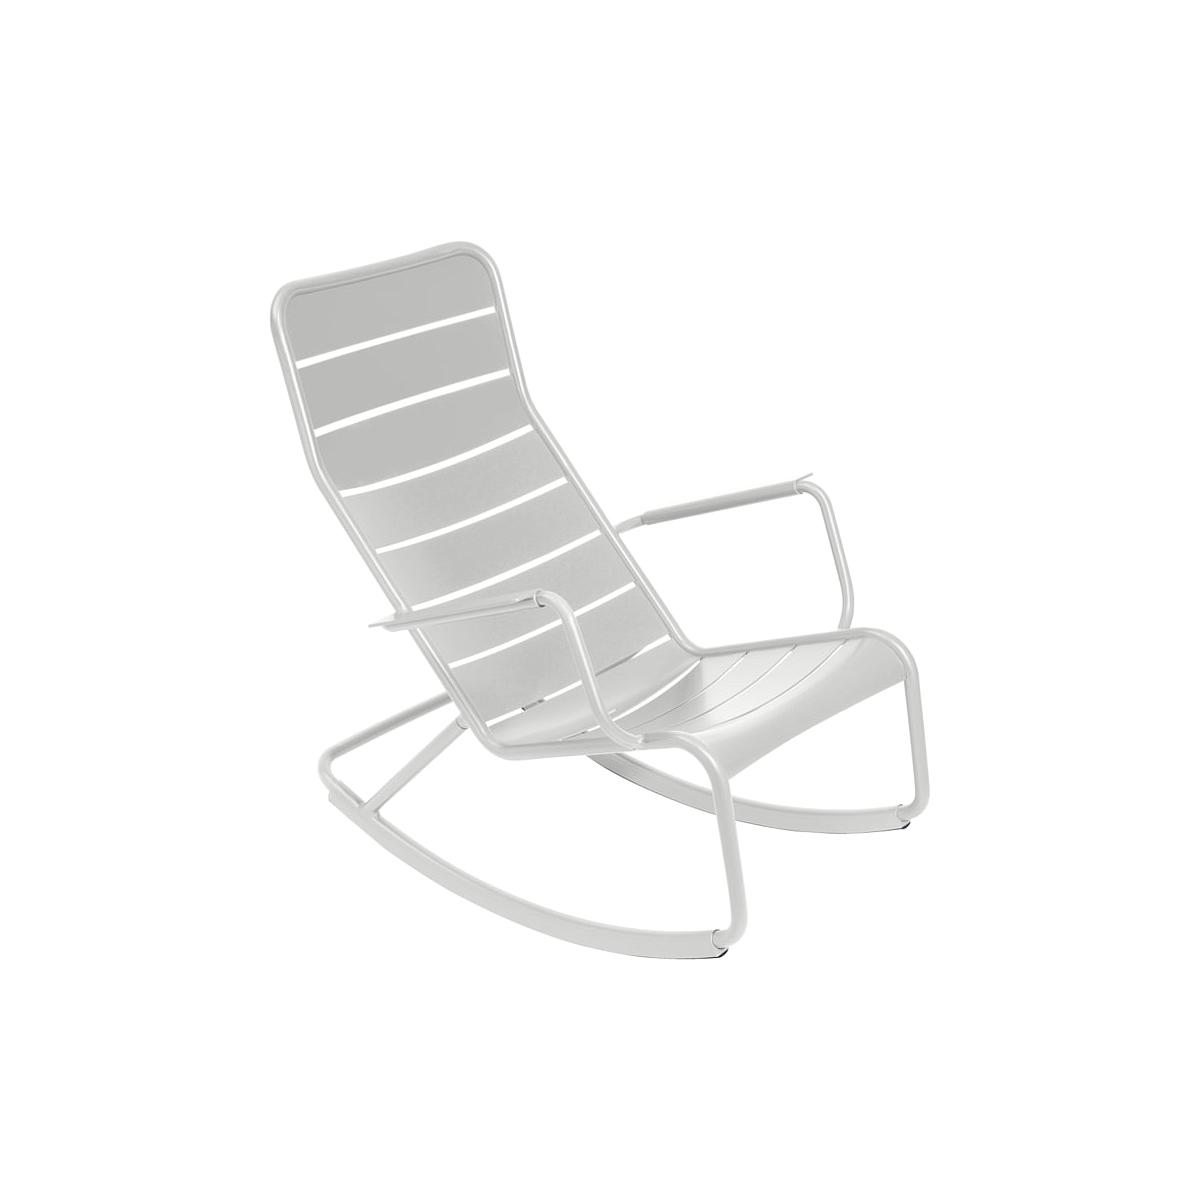 LUXEMBOURG by Fermob Rocking chair Gris métal